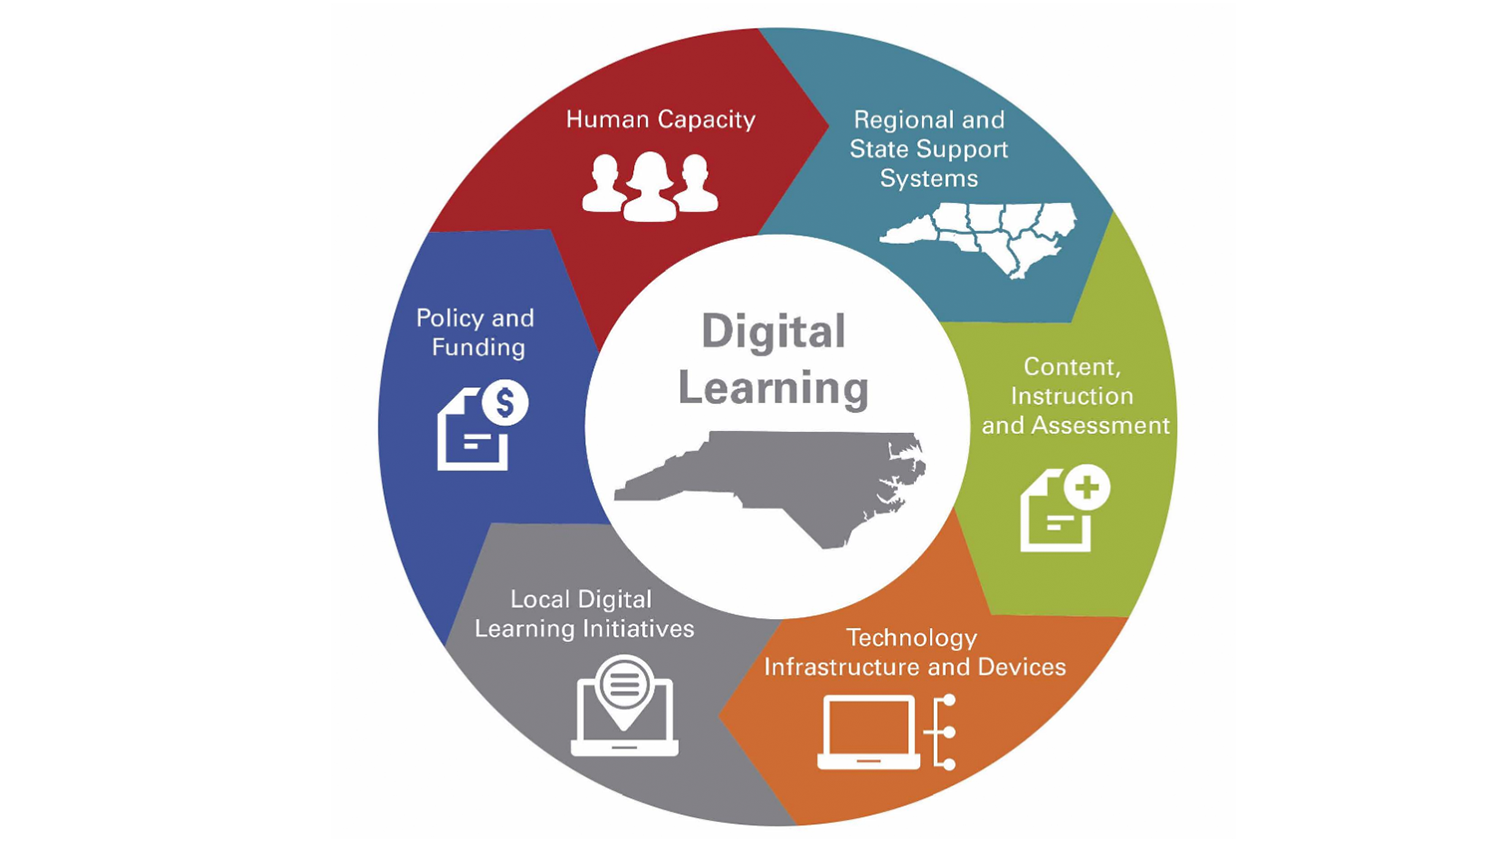 The six guiding principles of the North Carolina Digital Learning Plan